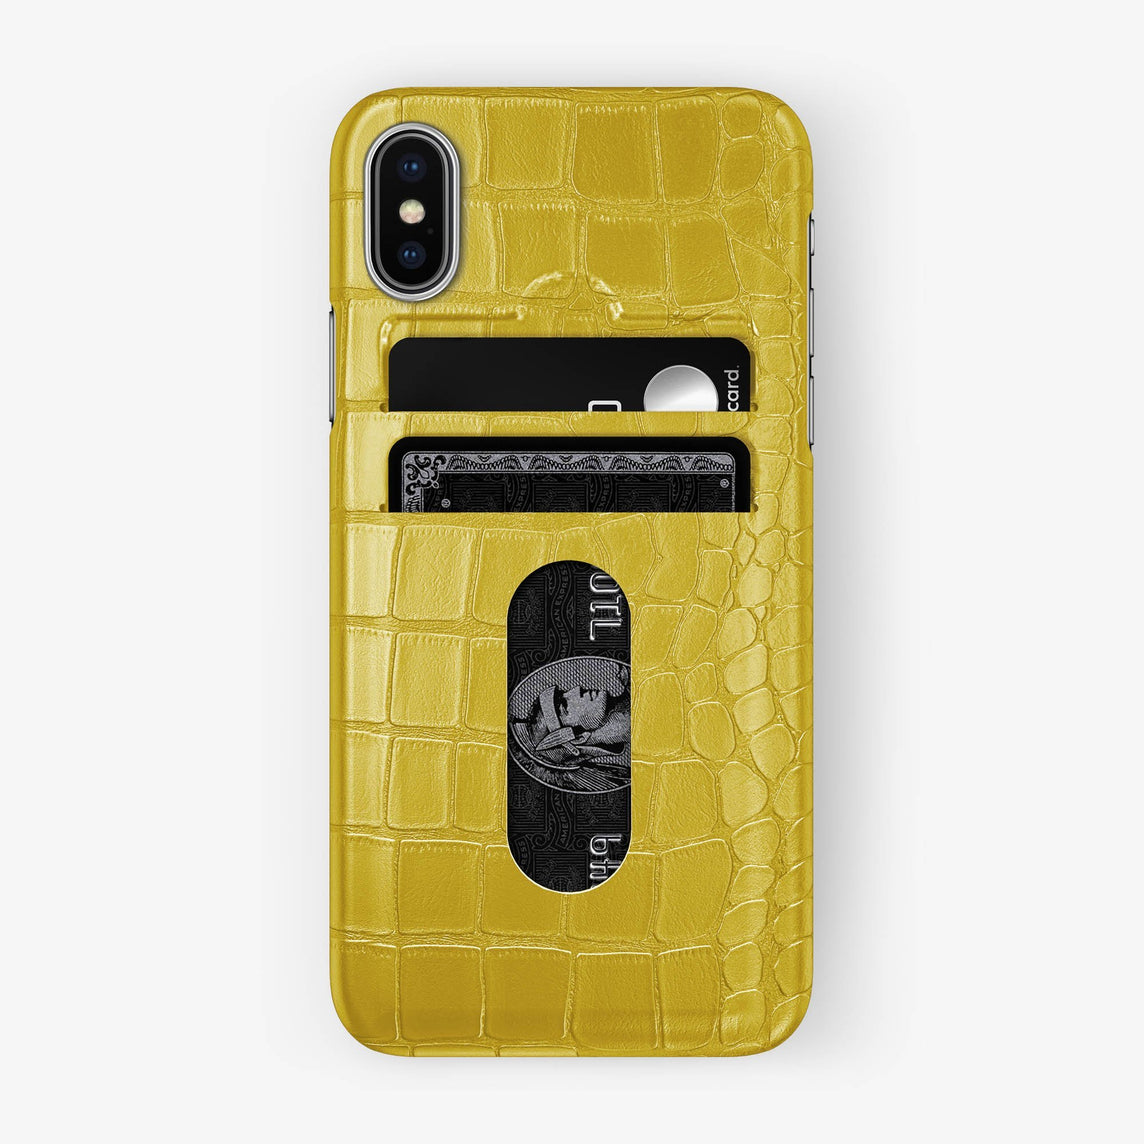 Alligator Card Holder Case iPhone Xs | Yellow - Stainless Steel - Hadoro